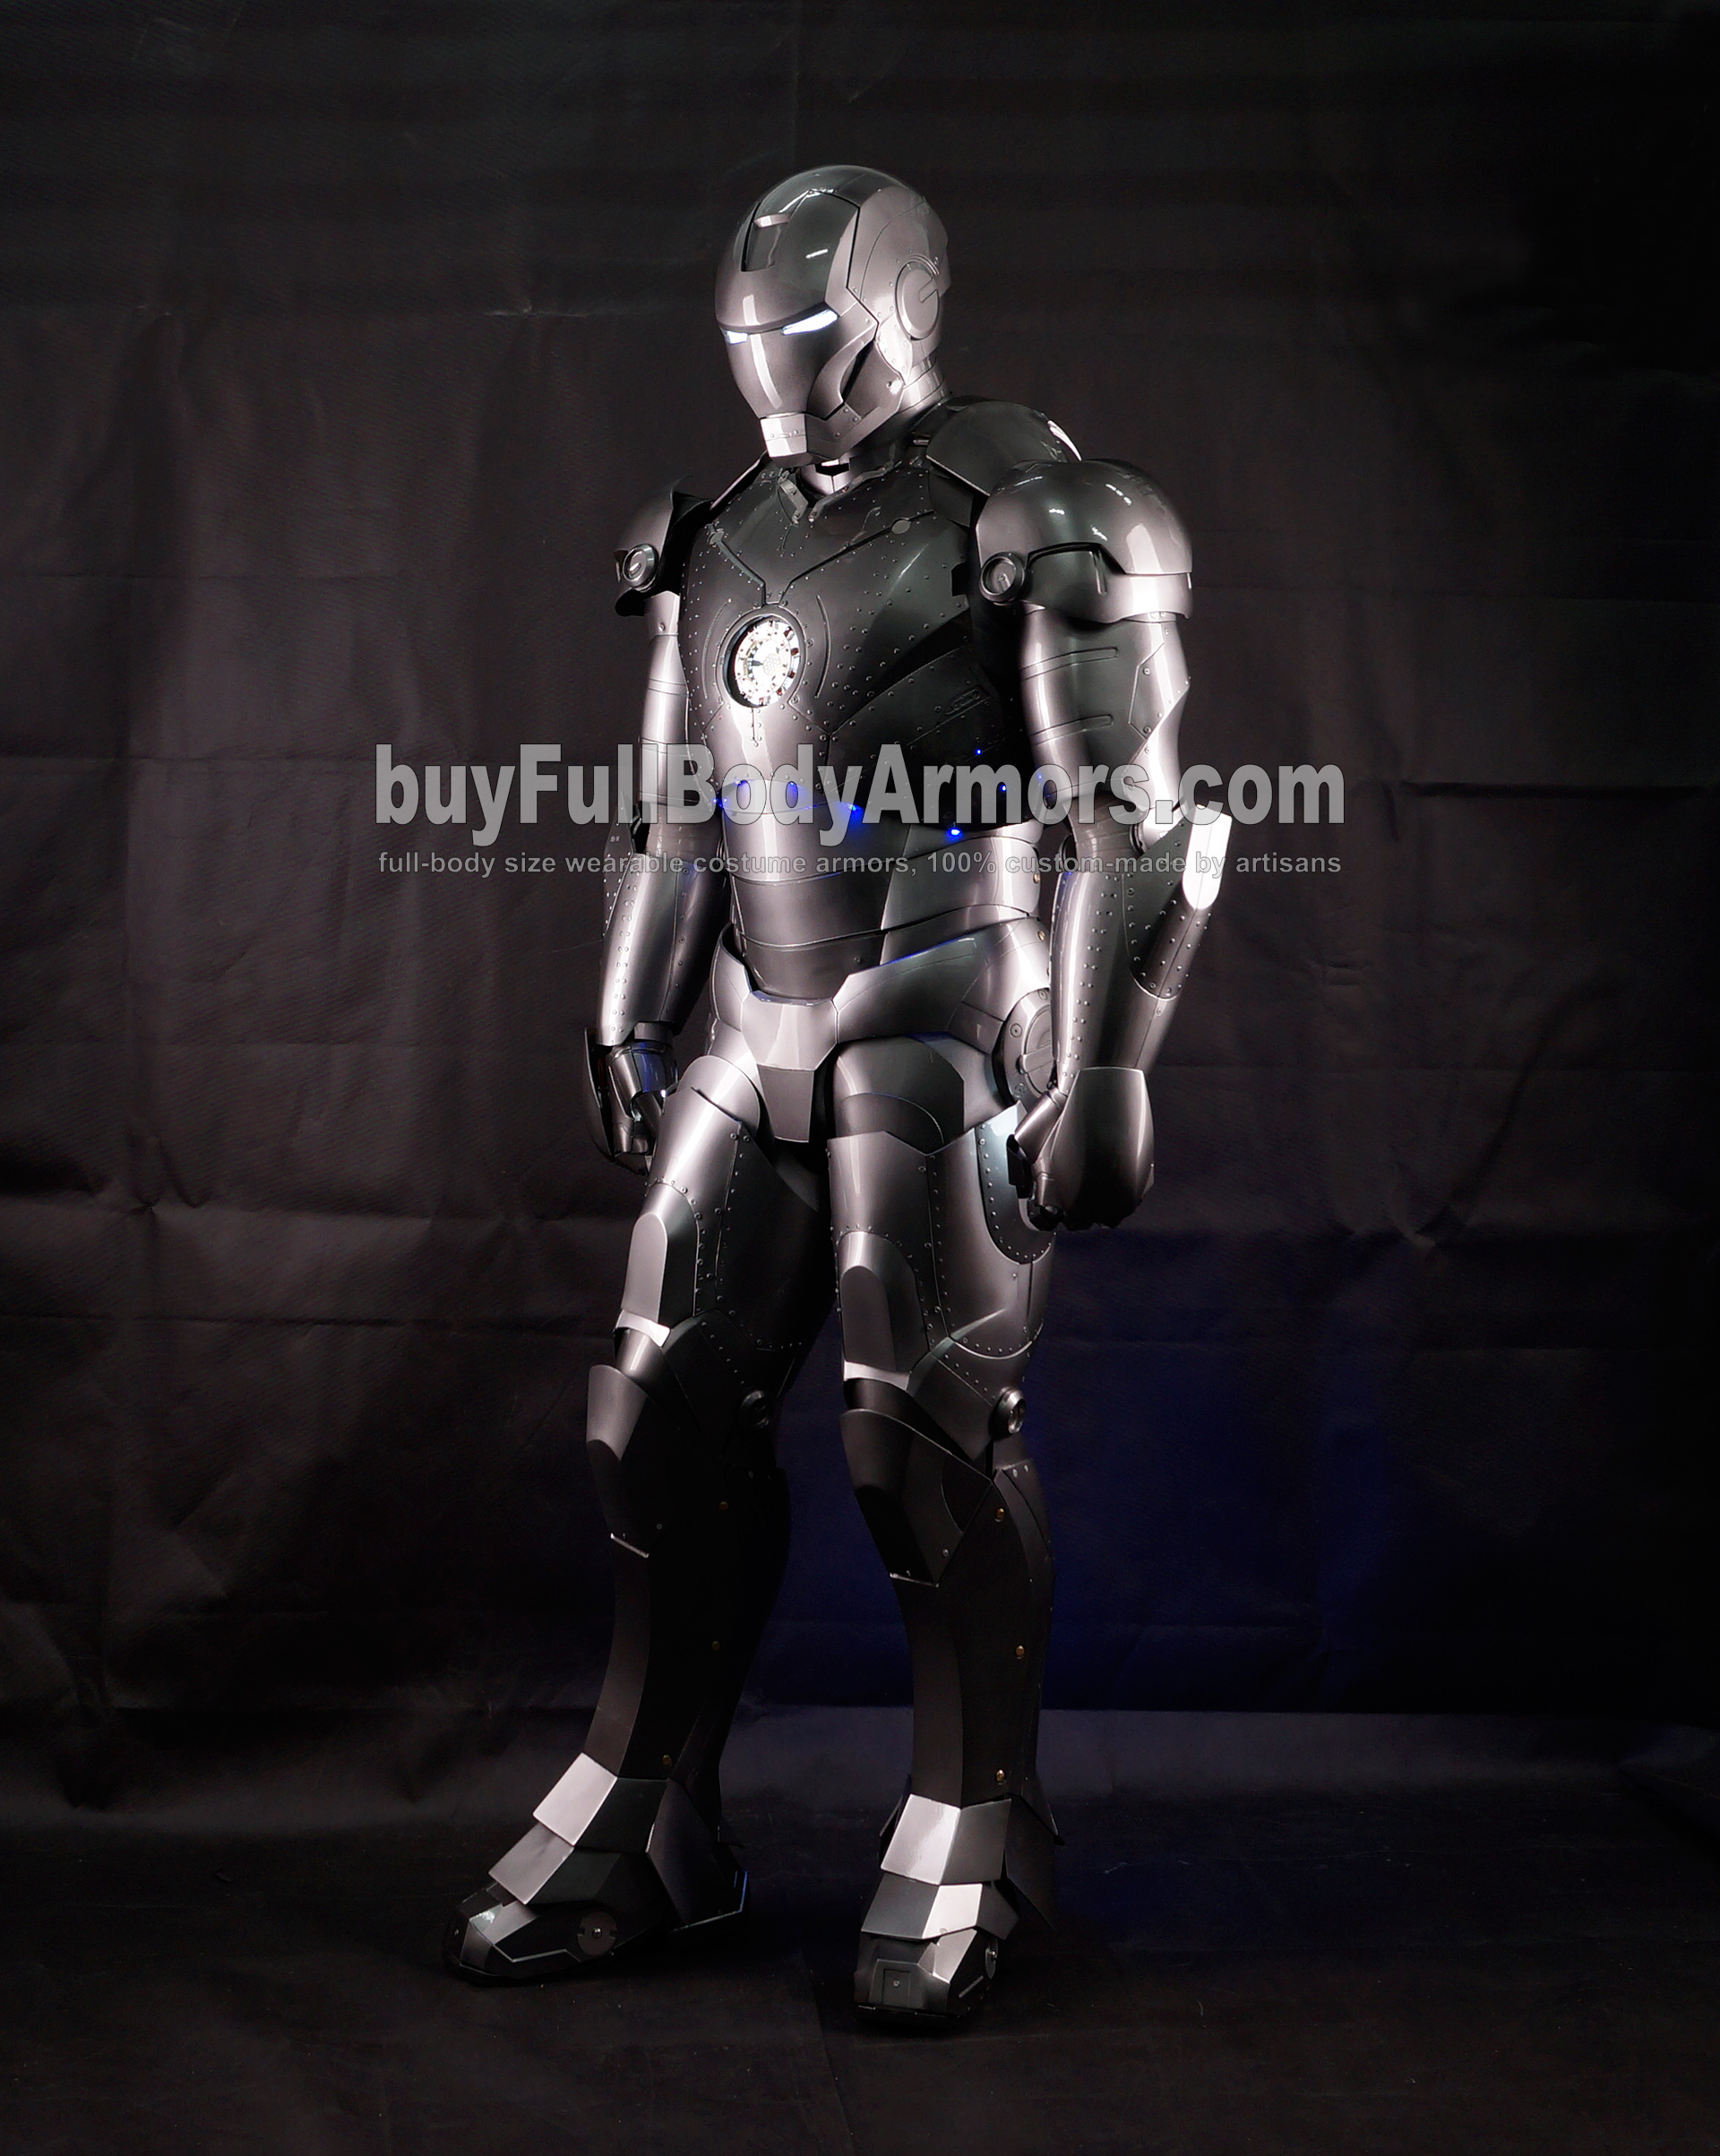 High Definition Photos of the Wearable Iron Man Mark 2 II Armor Costume Suit 11